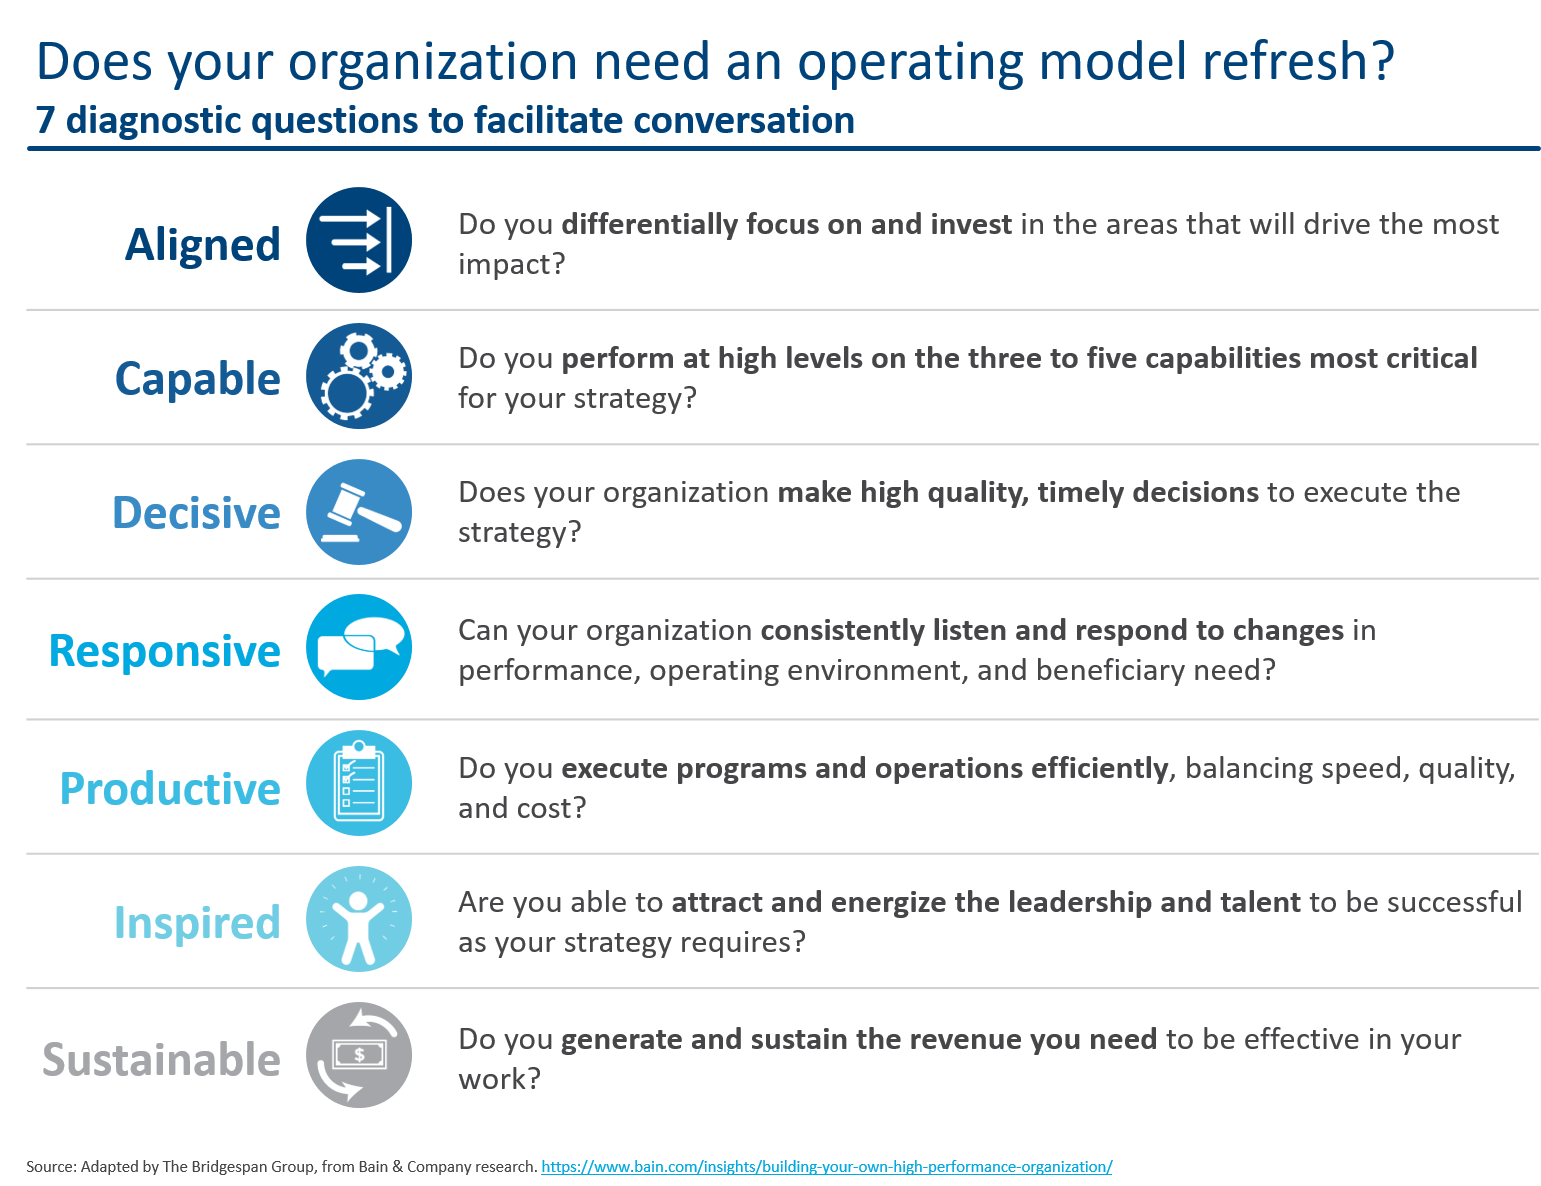 Does your organization need an operating model refresh